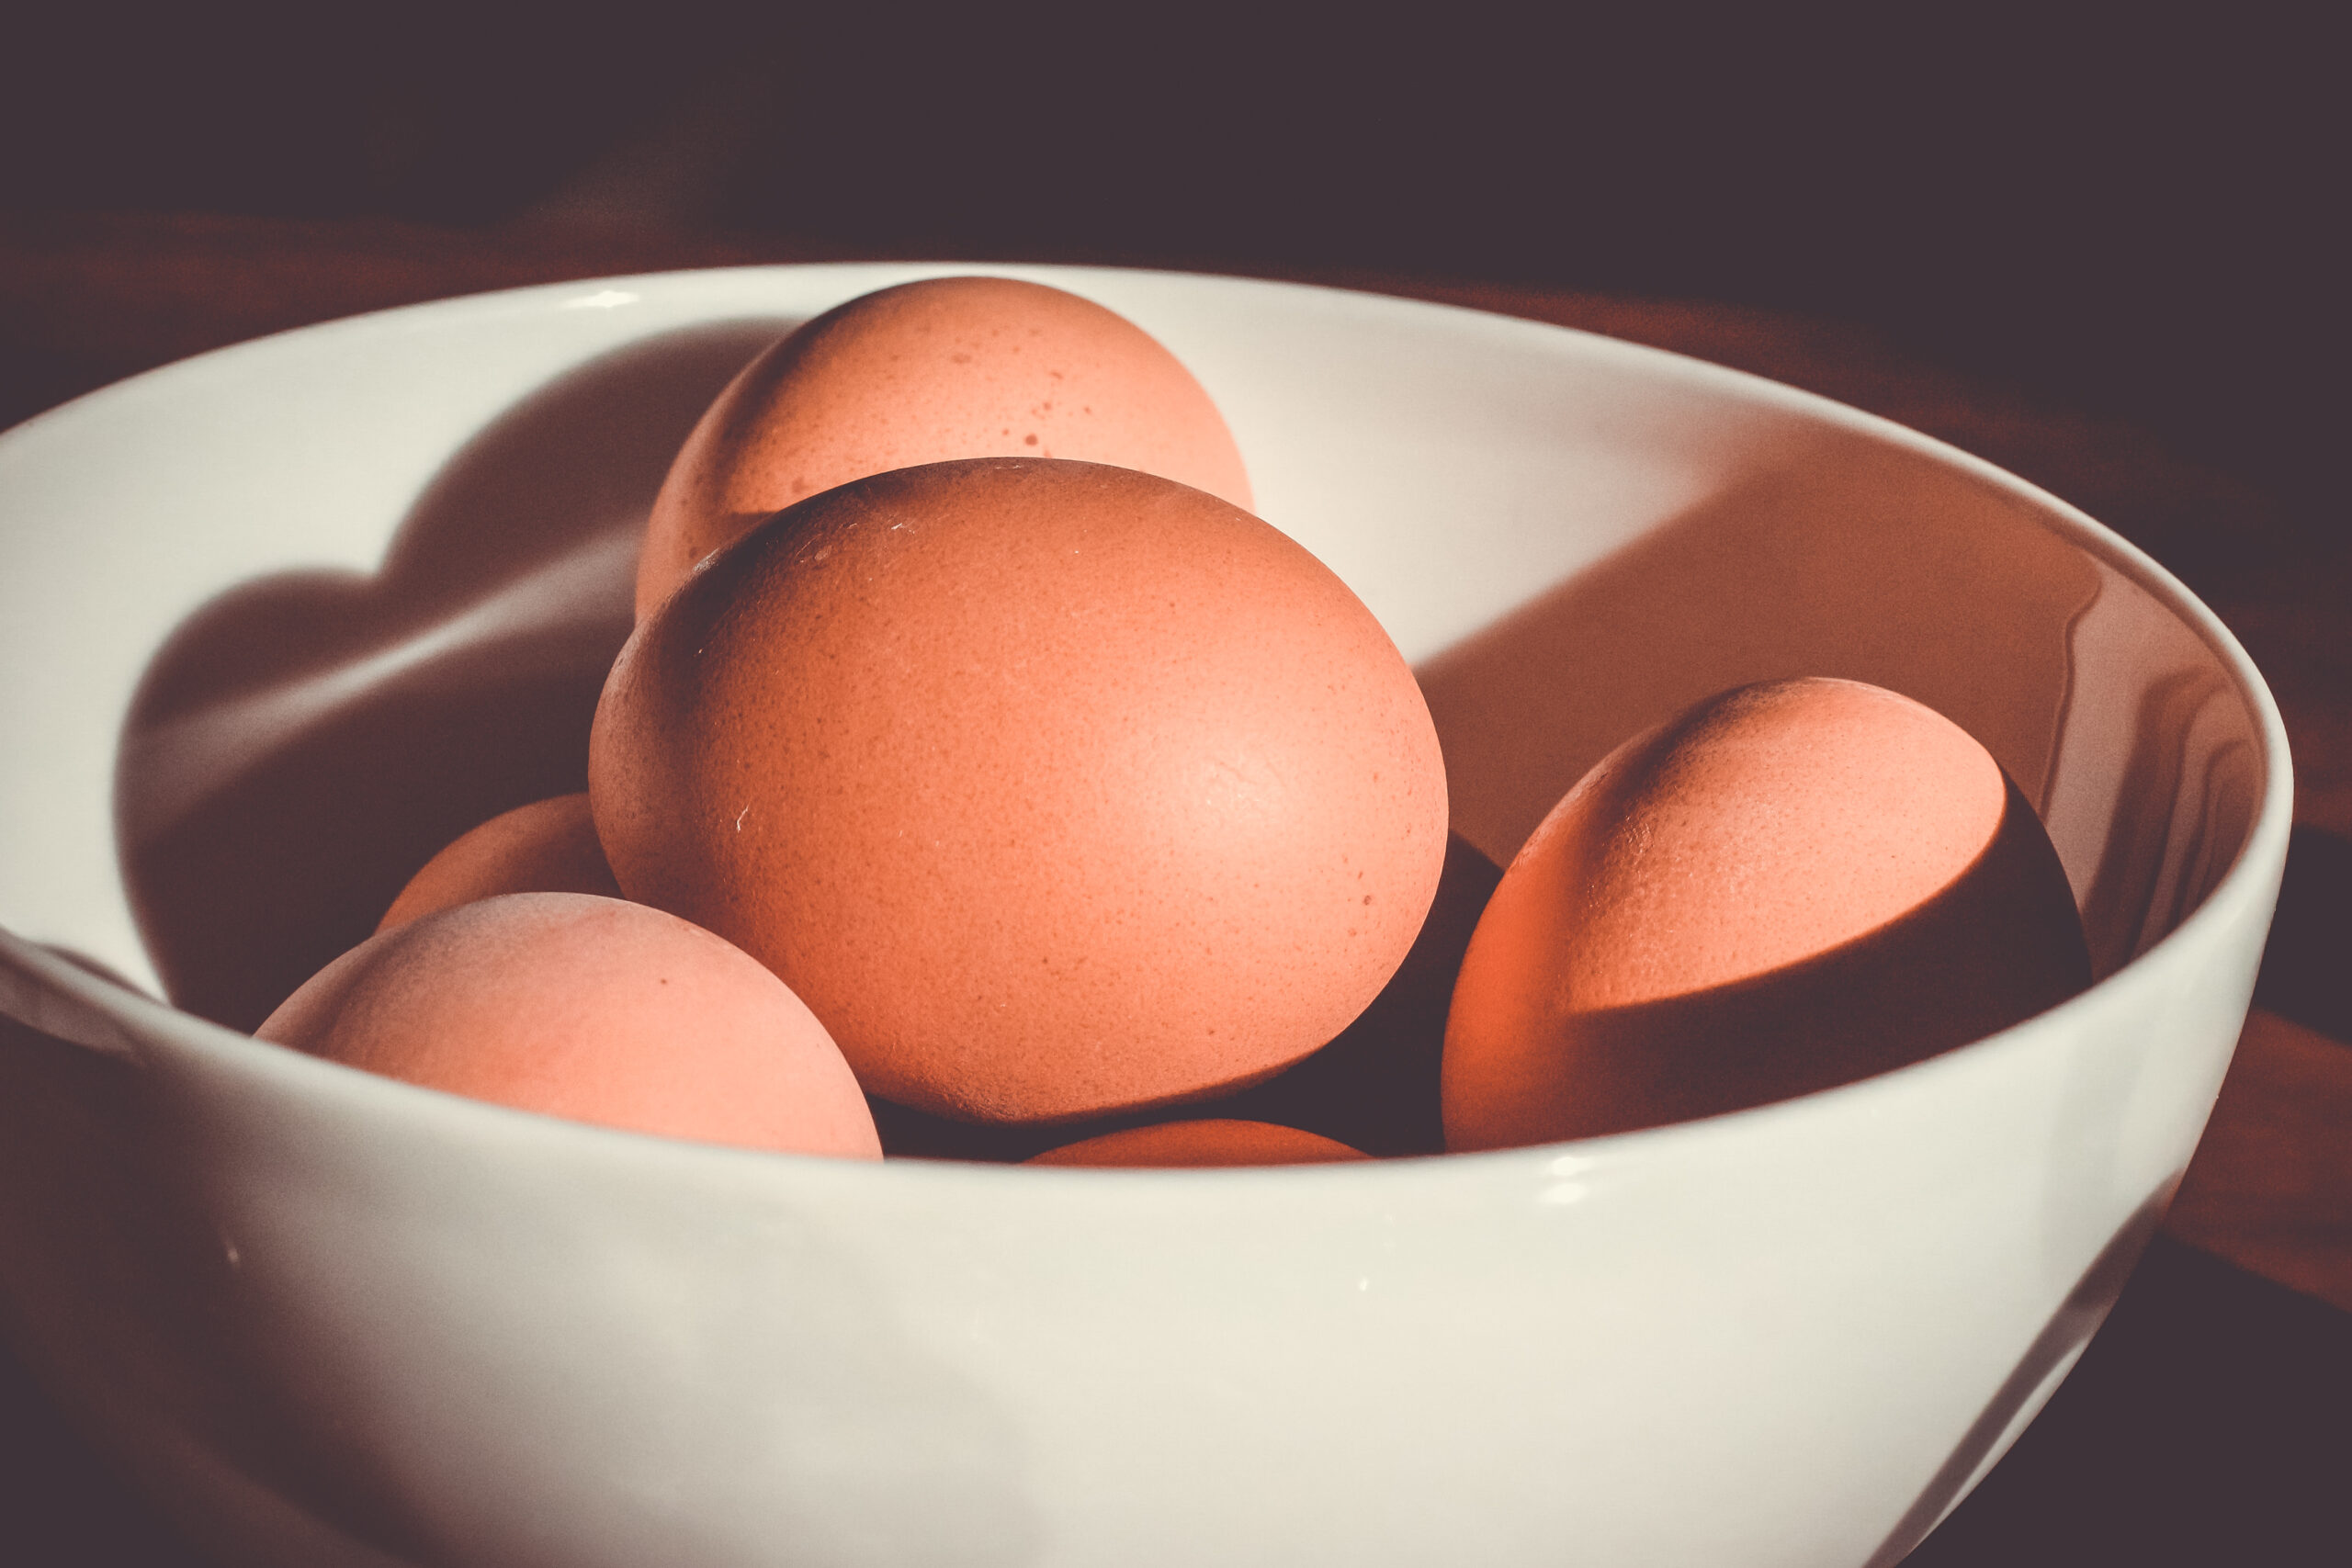 A diet high in Cholesterol is Not That Bad; May Simpkin Nutrition discusses the simple measure to lower cholesterol naturally